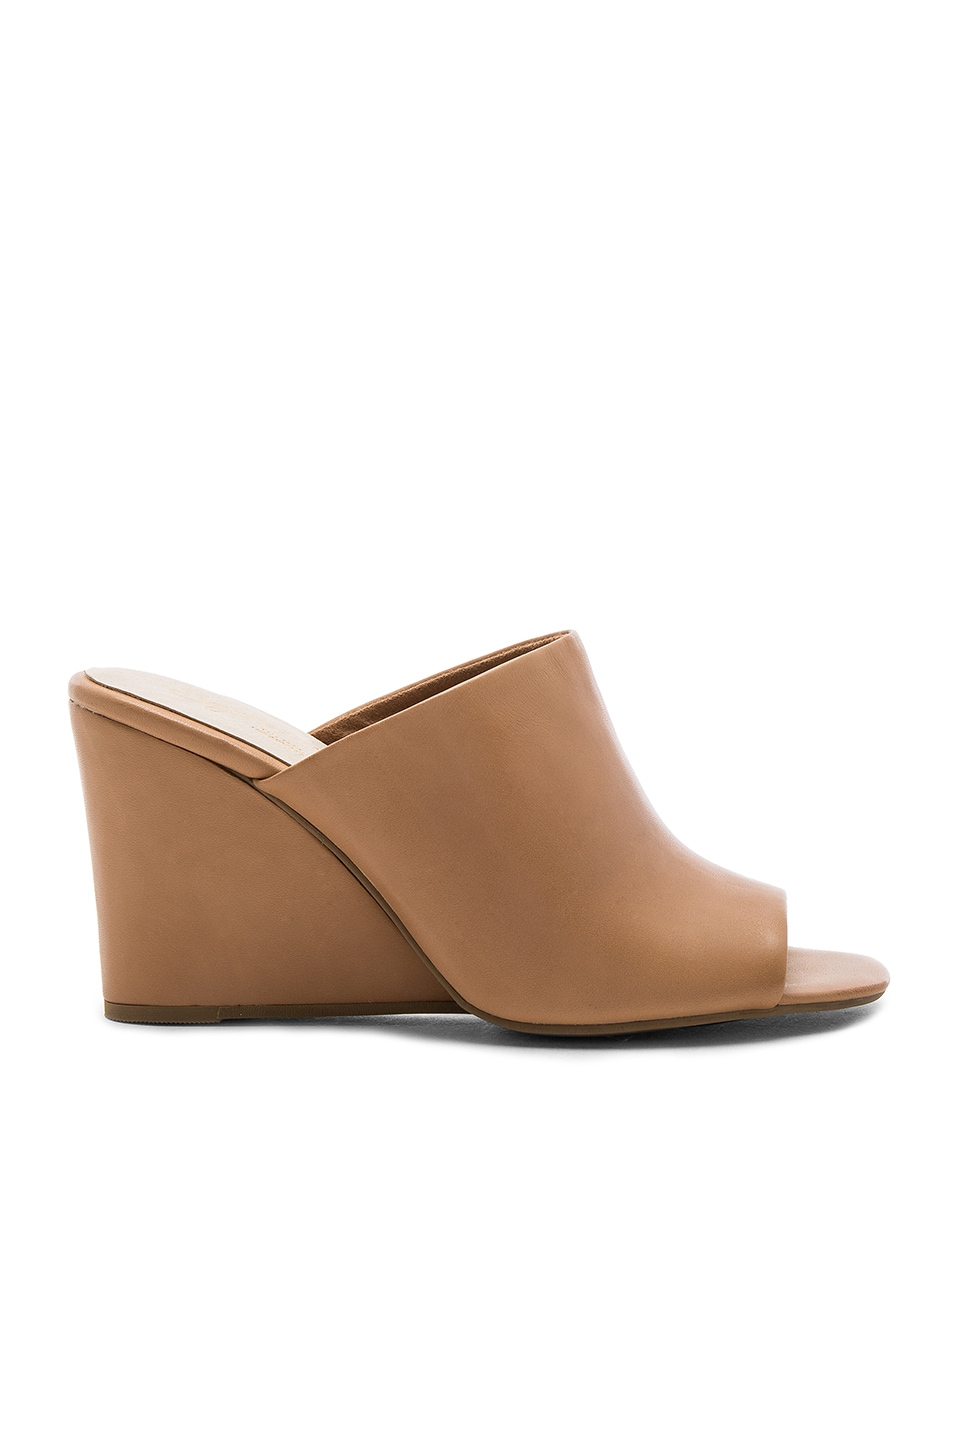 Seychelles Affirmation Wedge in Vacchetta Leather